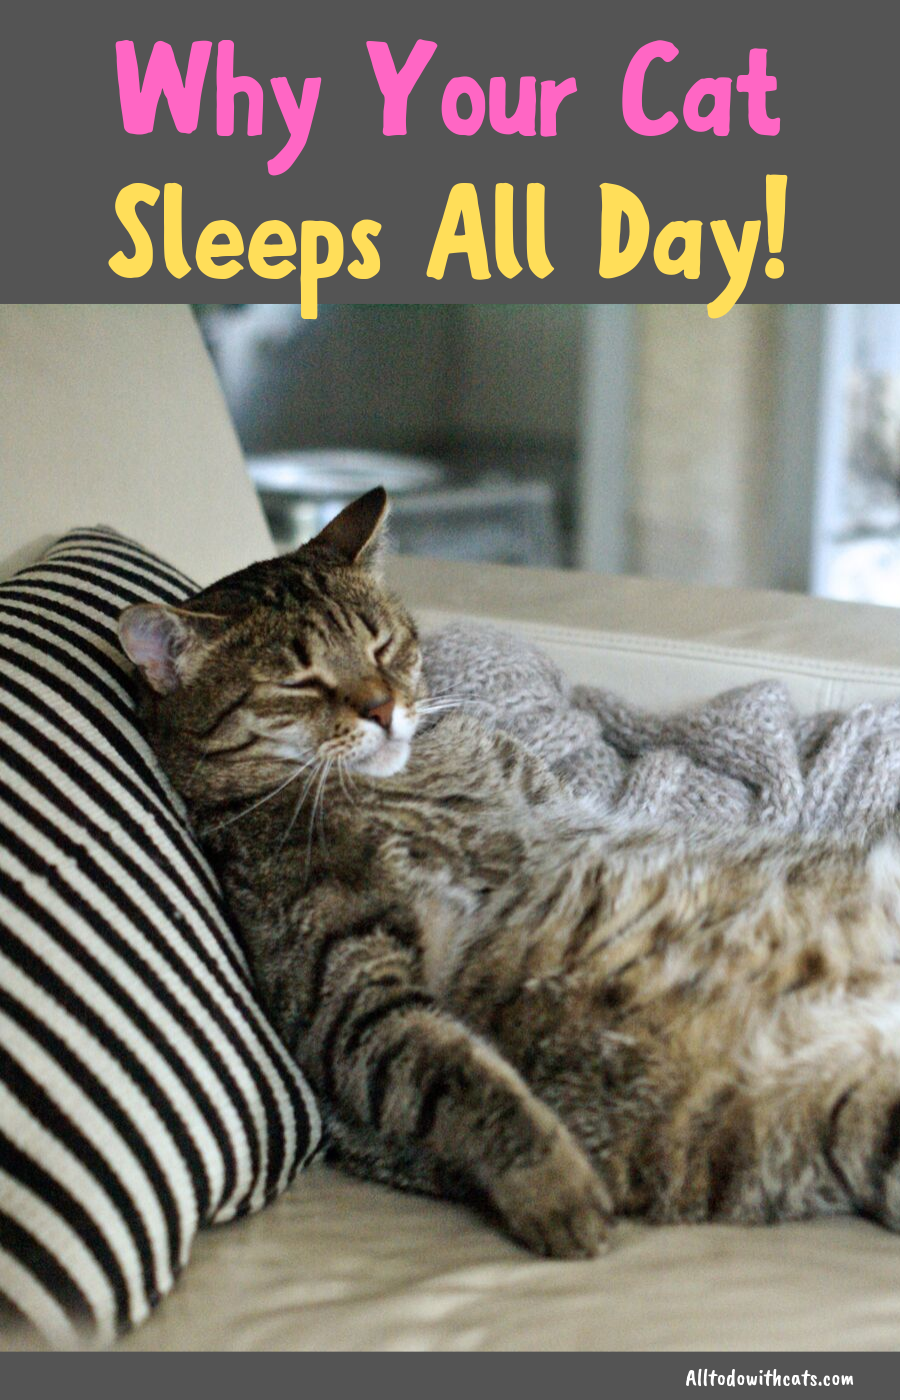 Why Do Cats Sleep So much? (Discover Amazing Facts) (With